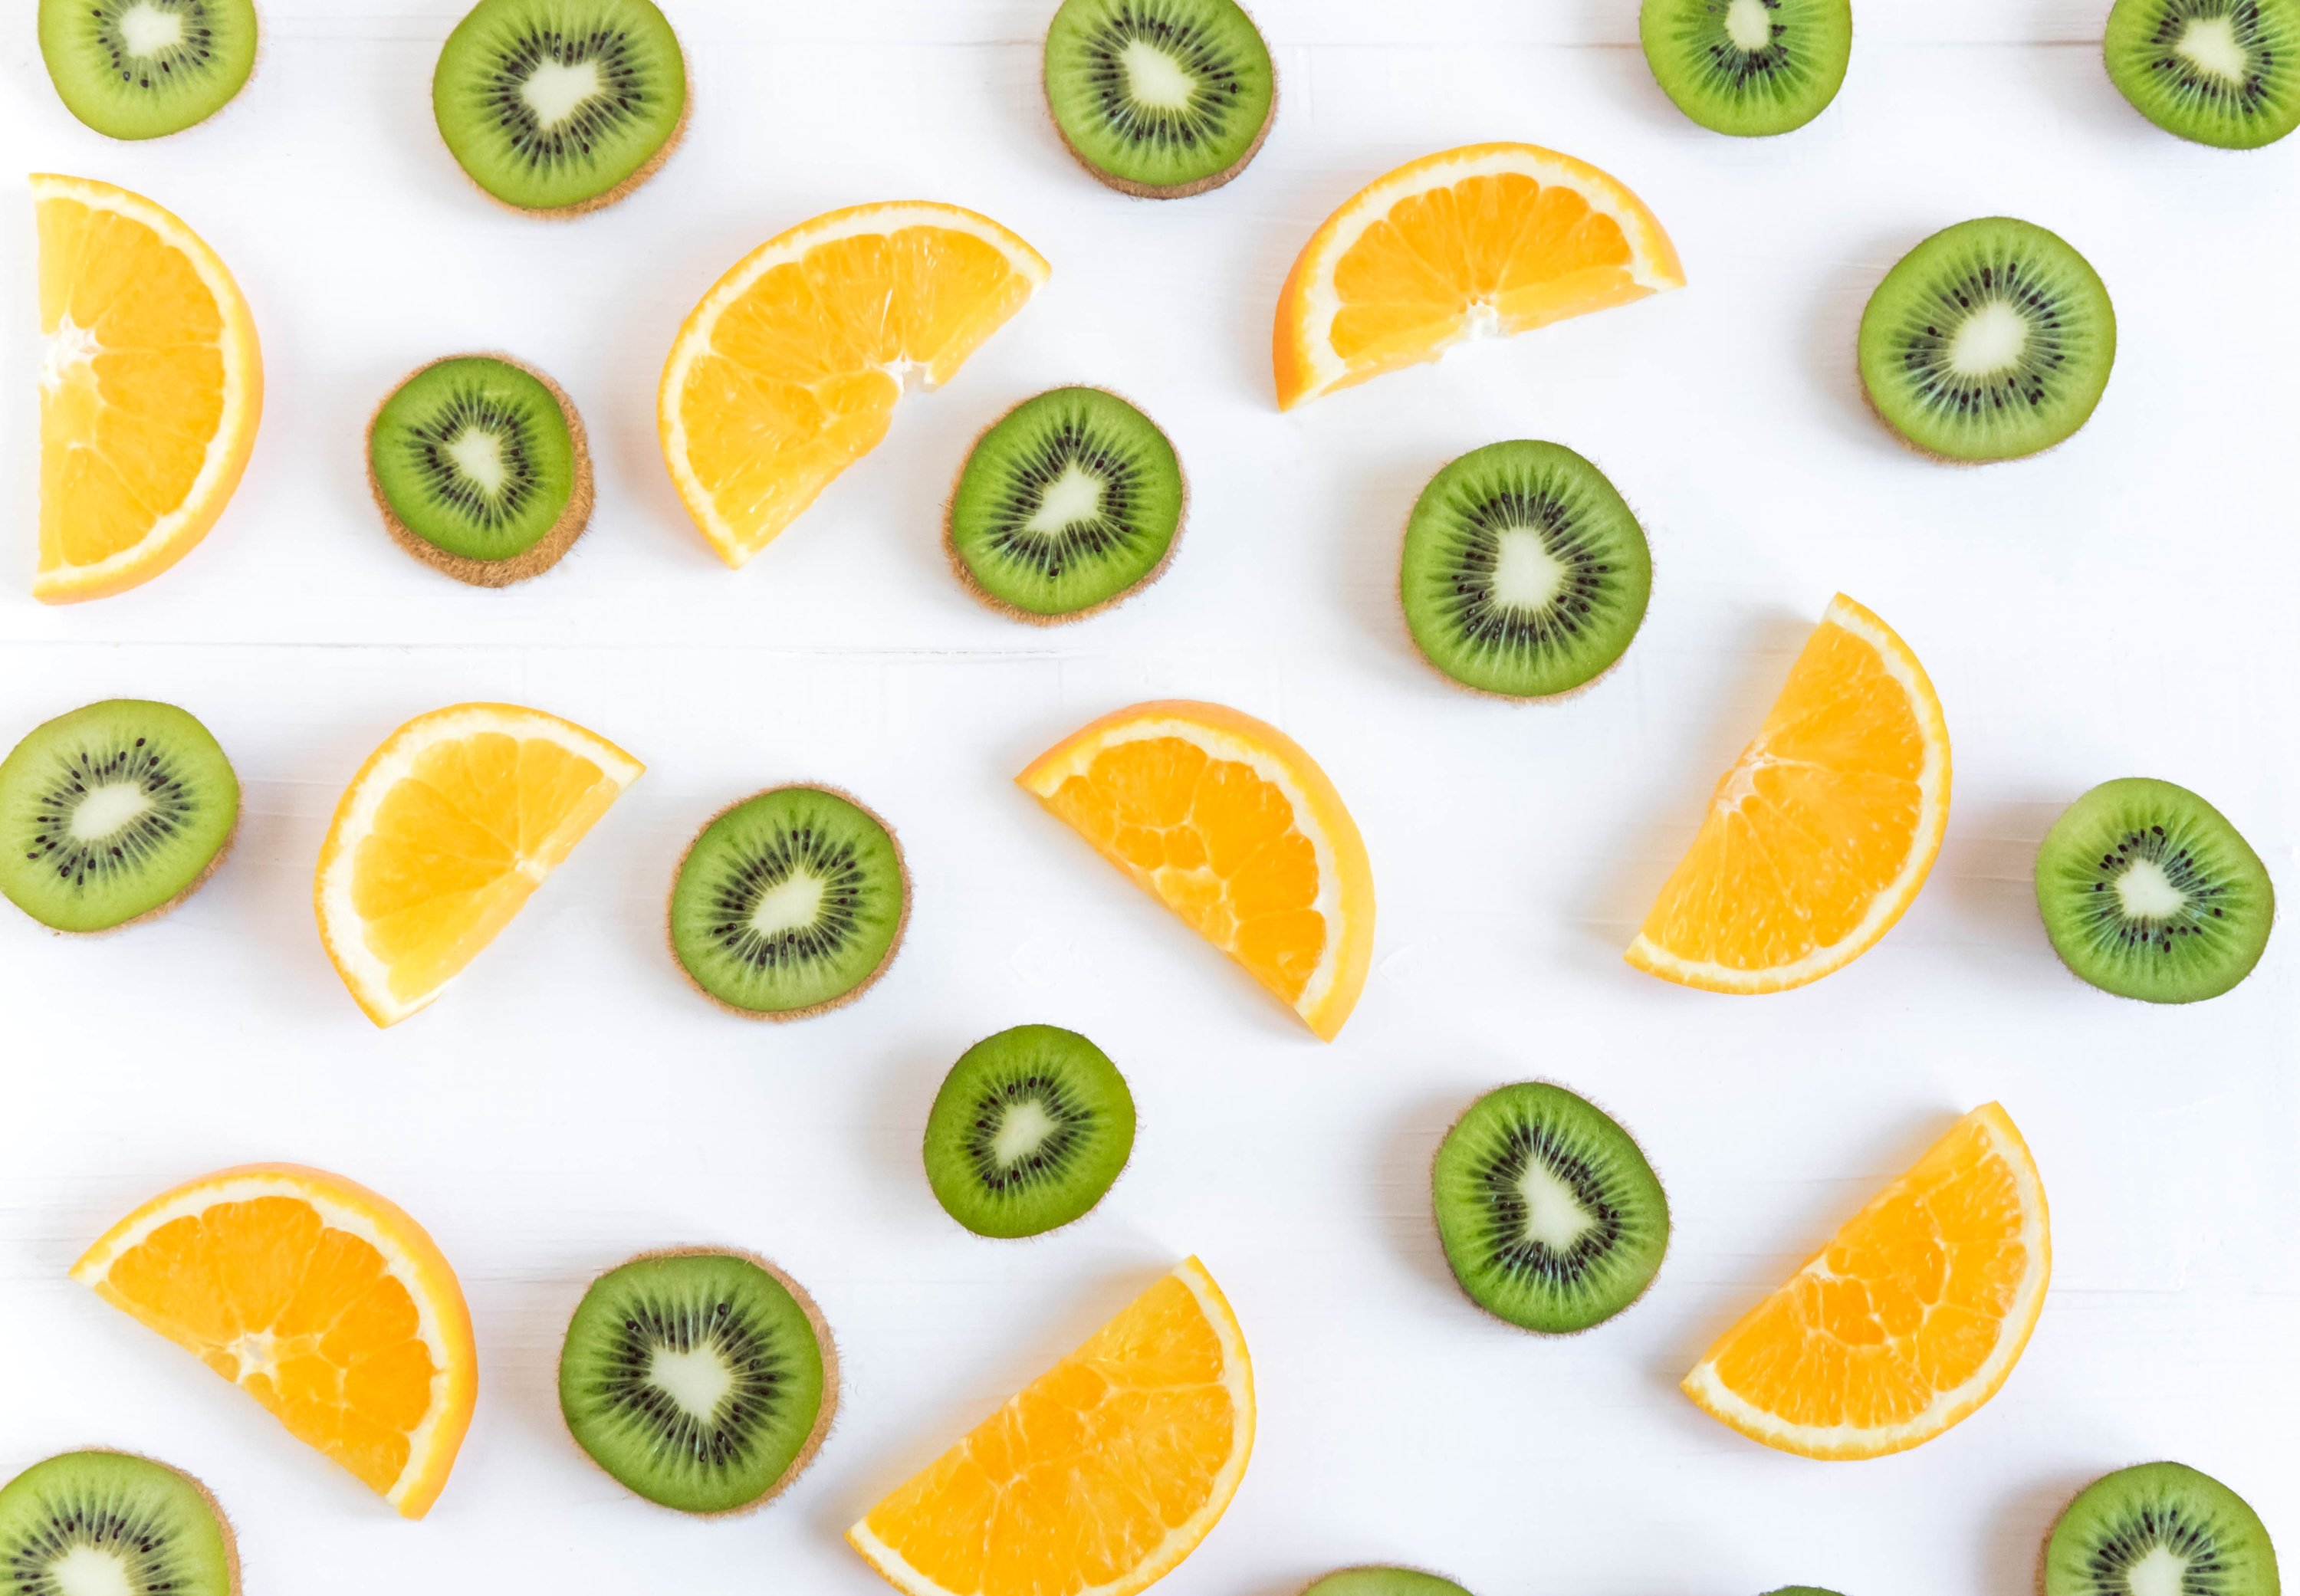 Oranges and kiwis are great sources of disease-fighting vitamin C.(Shutterstock Photo)